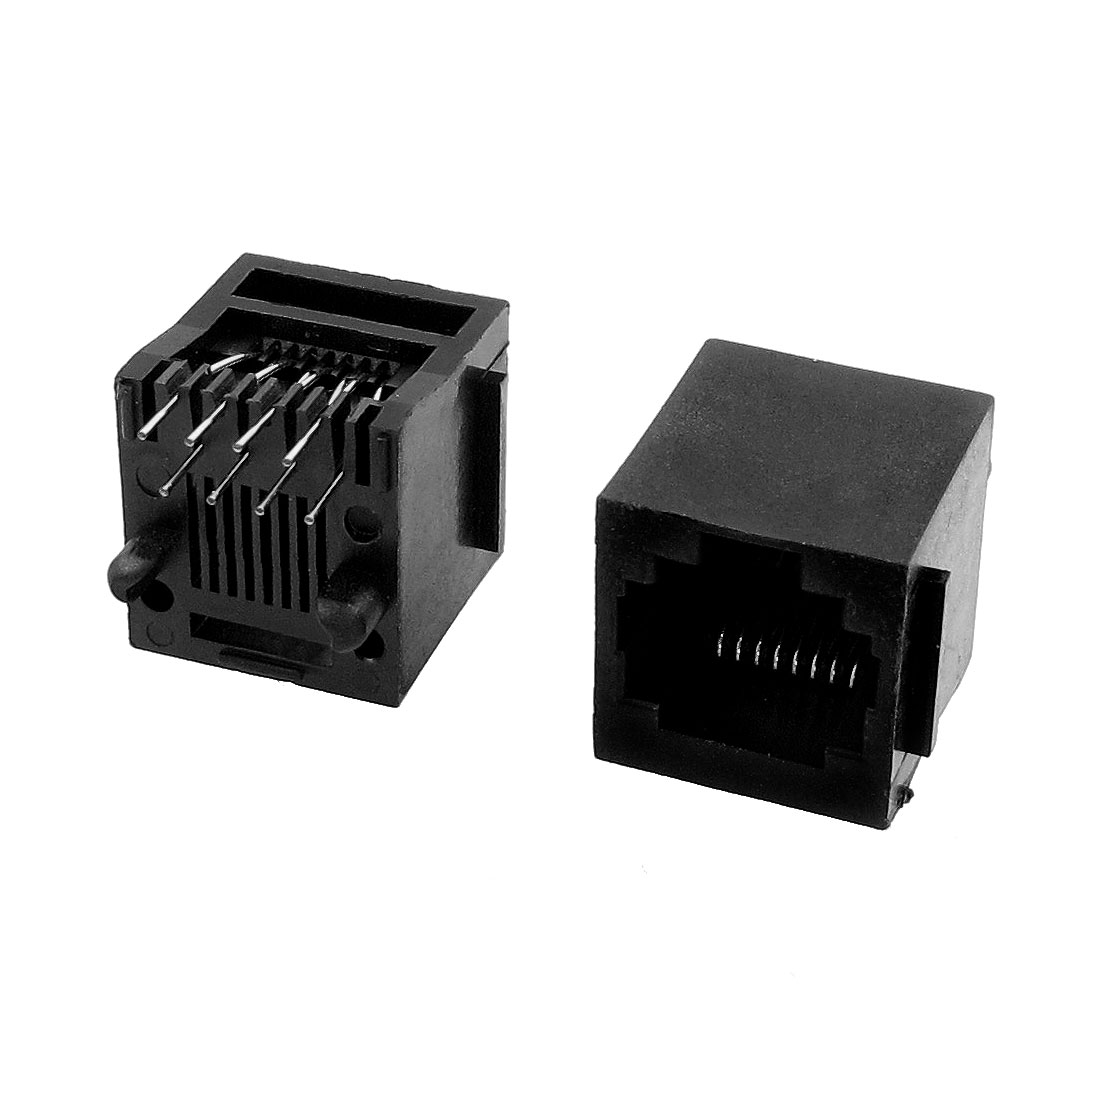 Network 8 Terminals RJ45 Modular PCB Jacks Gold Tone Black 2 Pcs